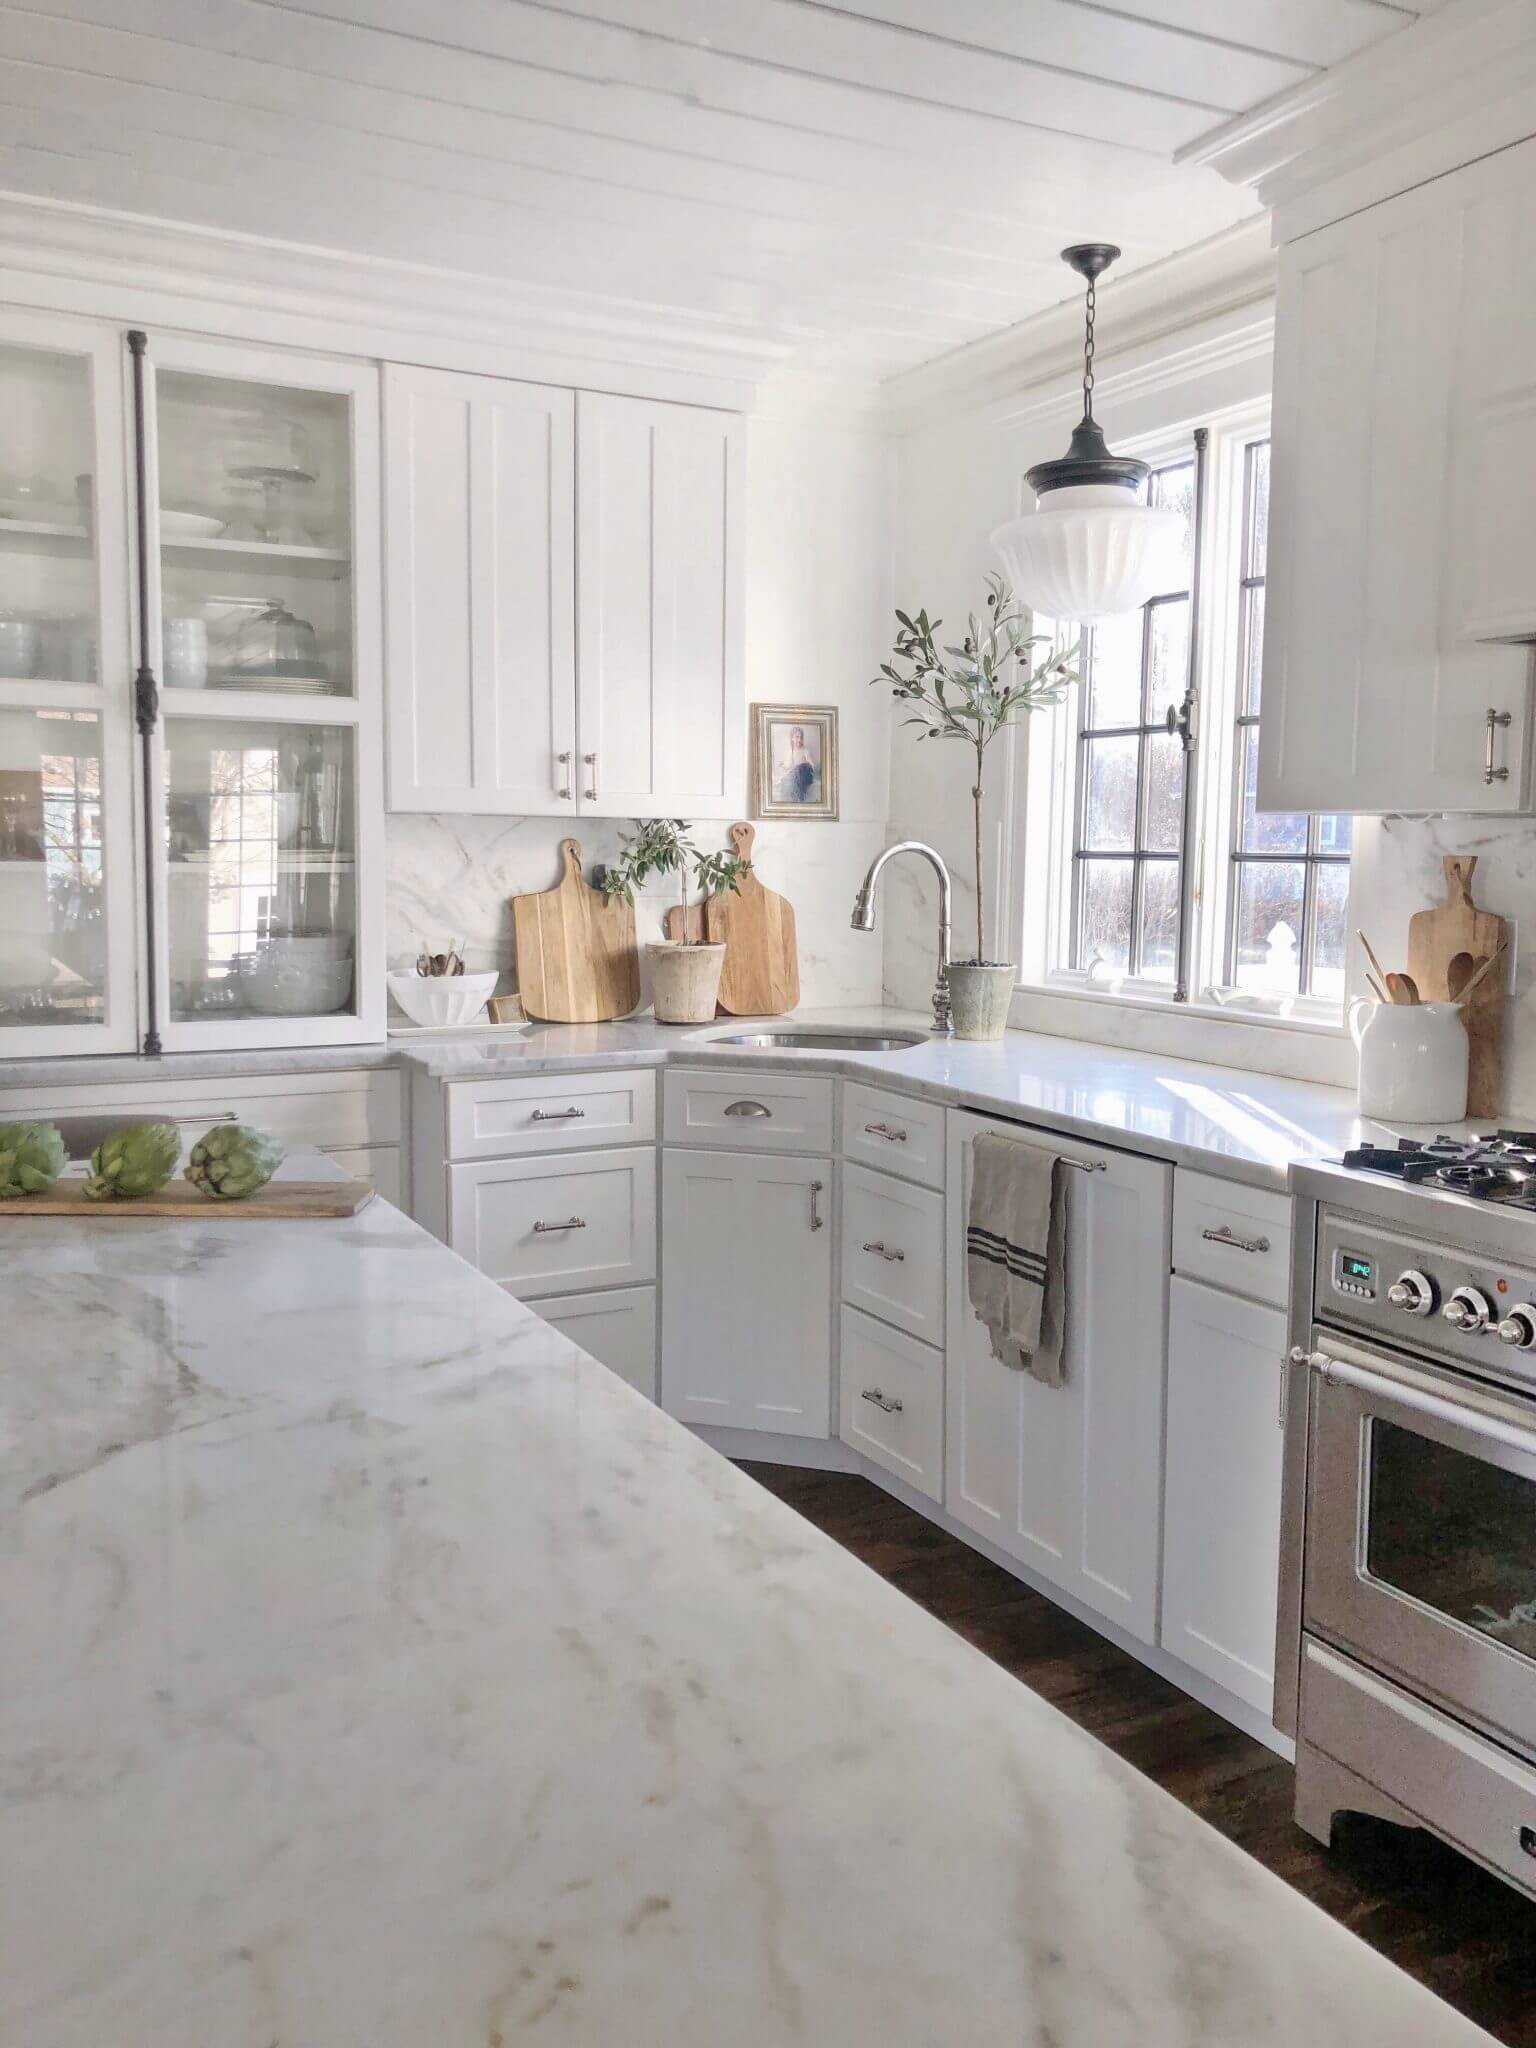 Featherglass farmhouse kitchen sink marble counter tops white cabinets